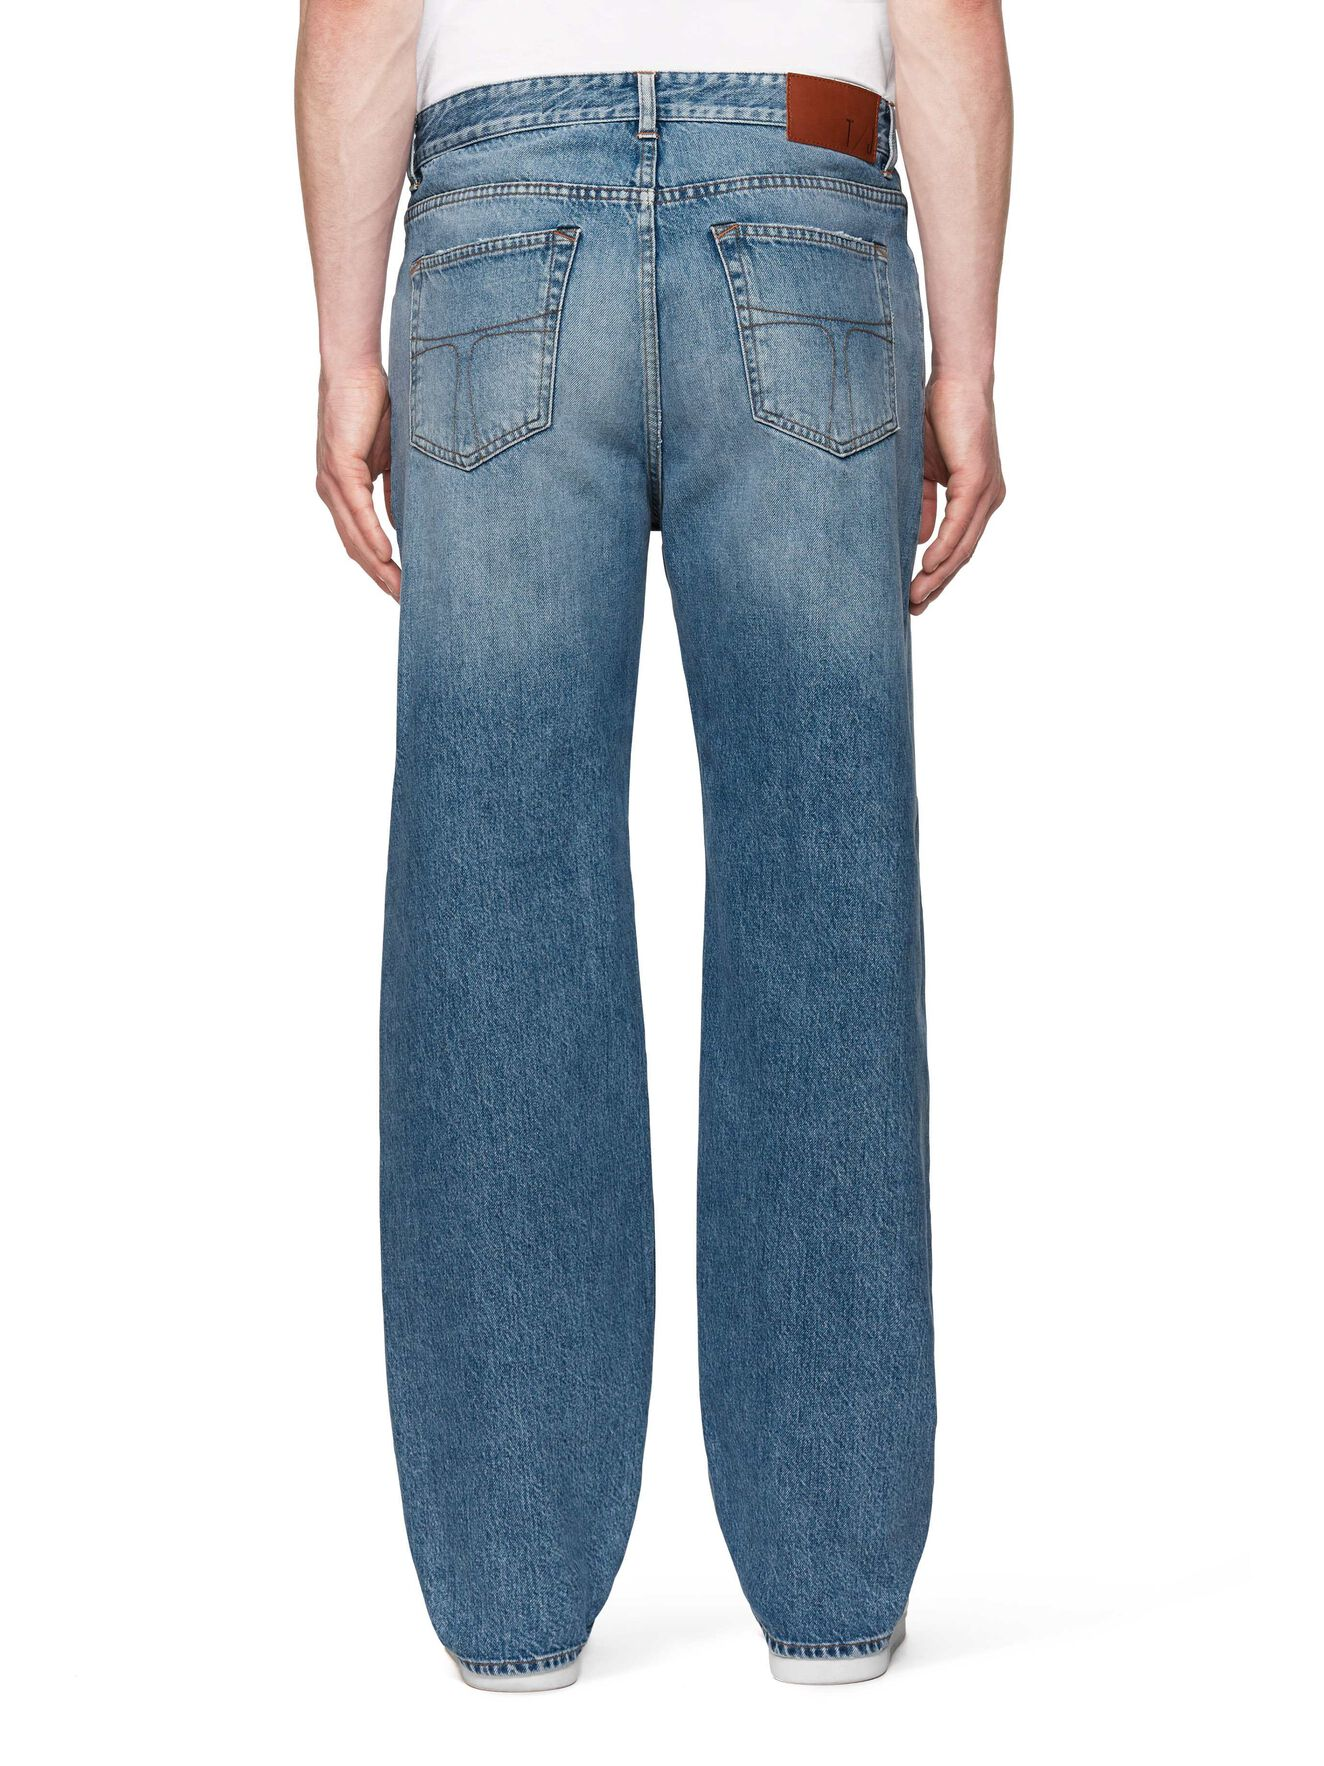 Big Jeans in Light blue from Tiger of Sweden